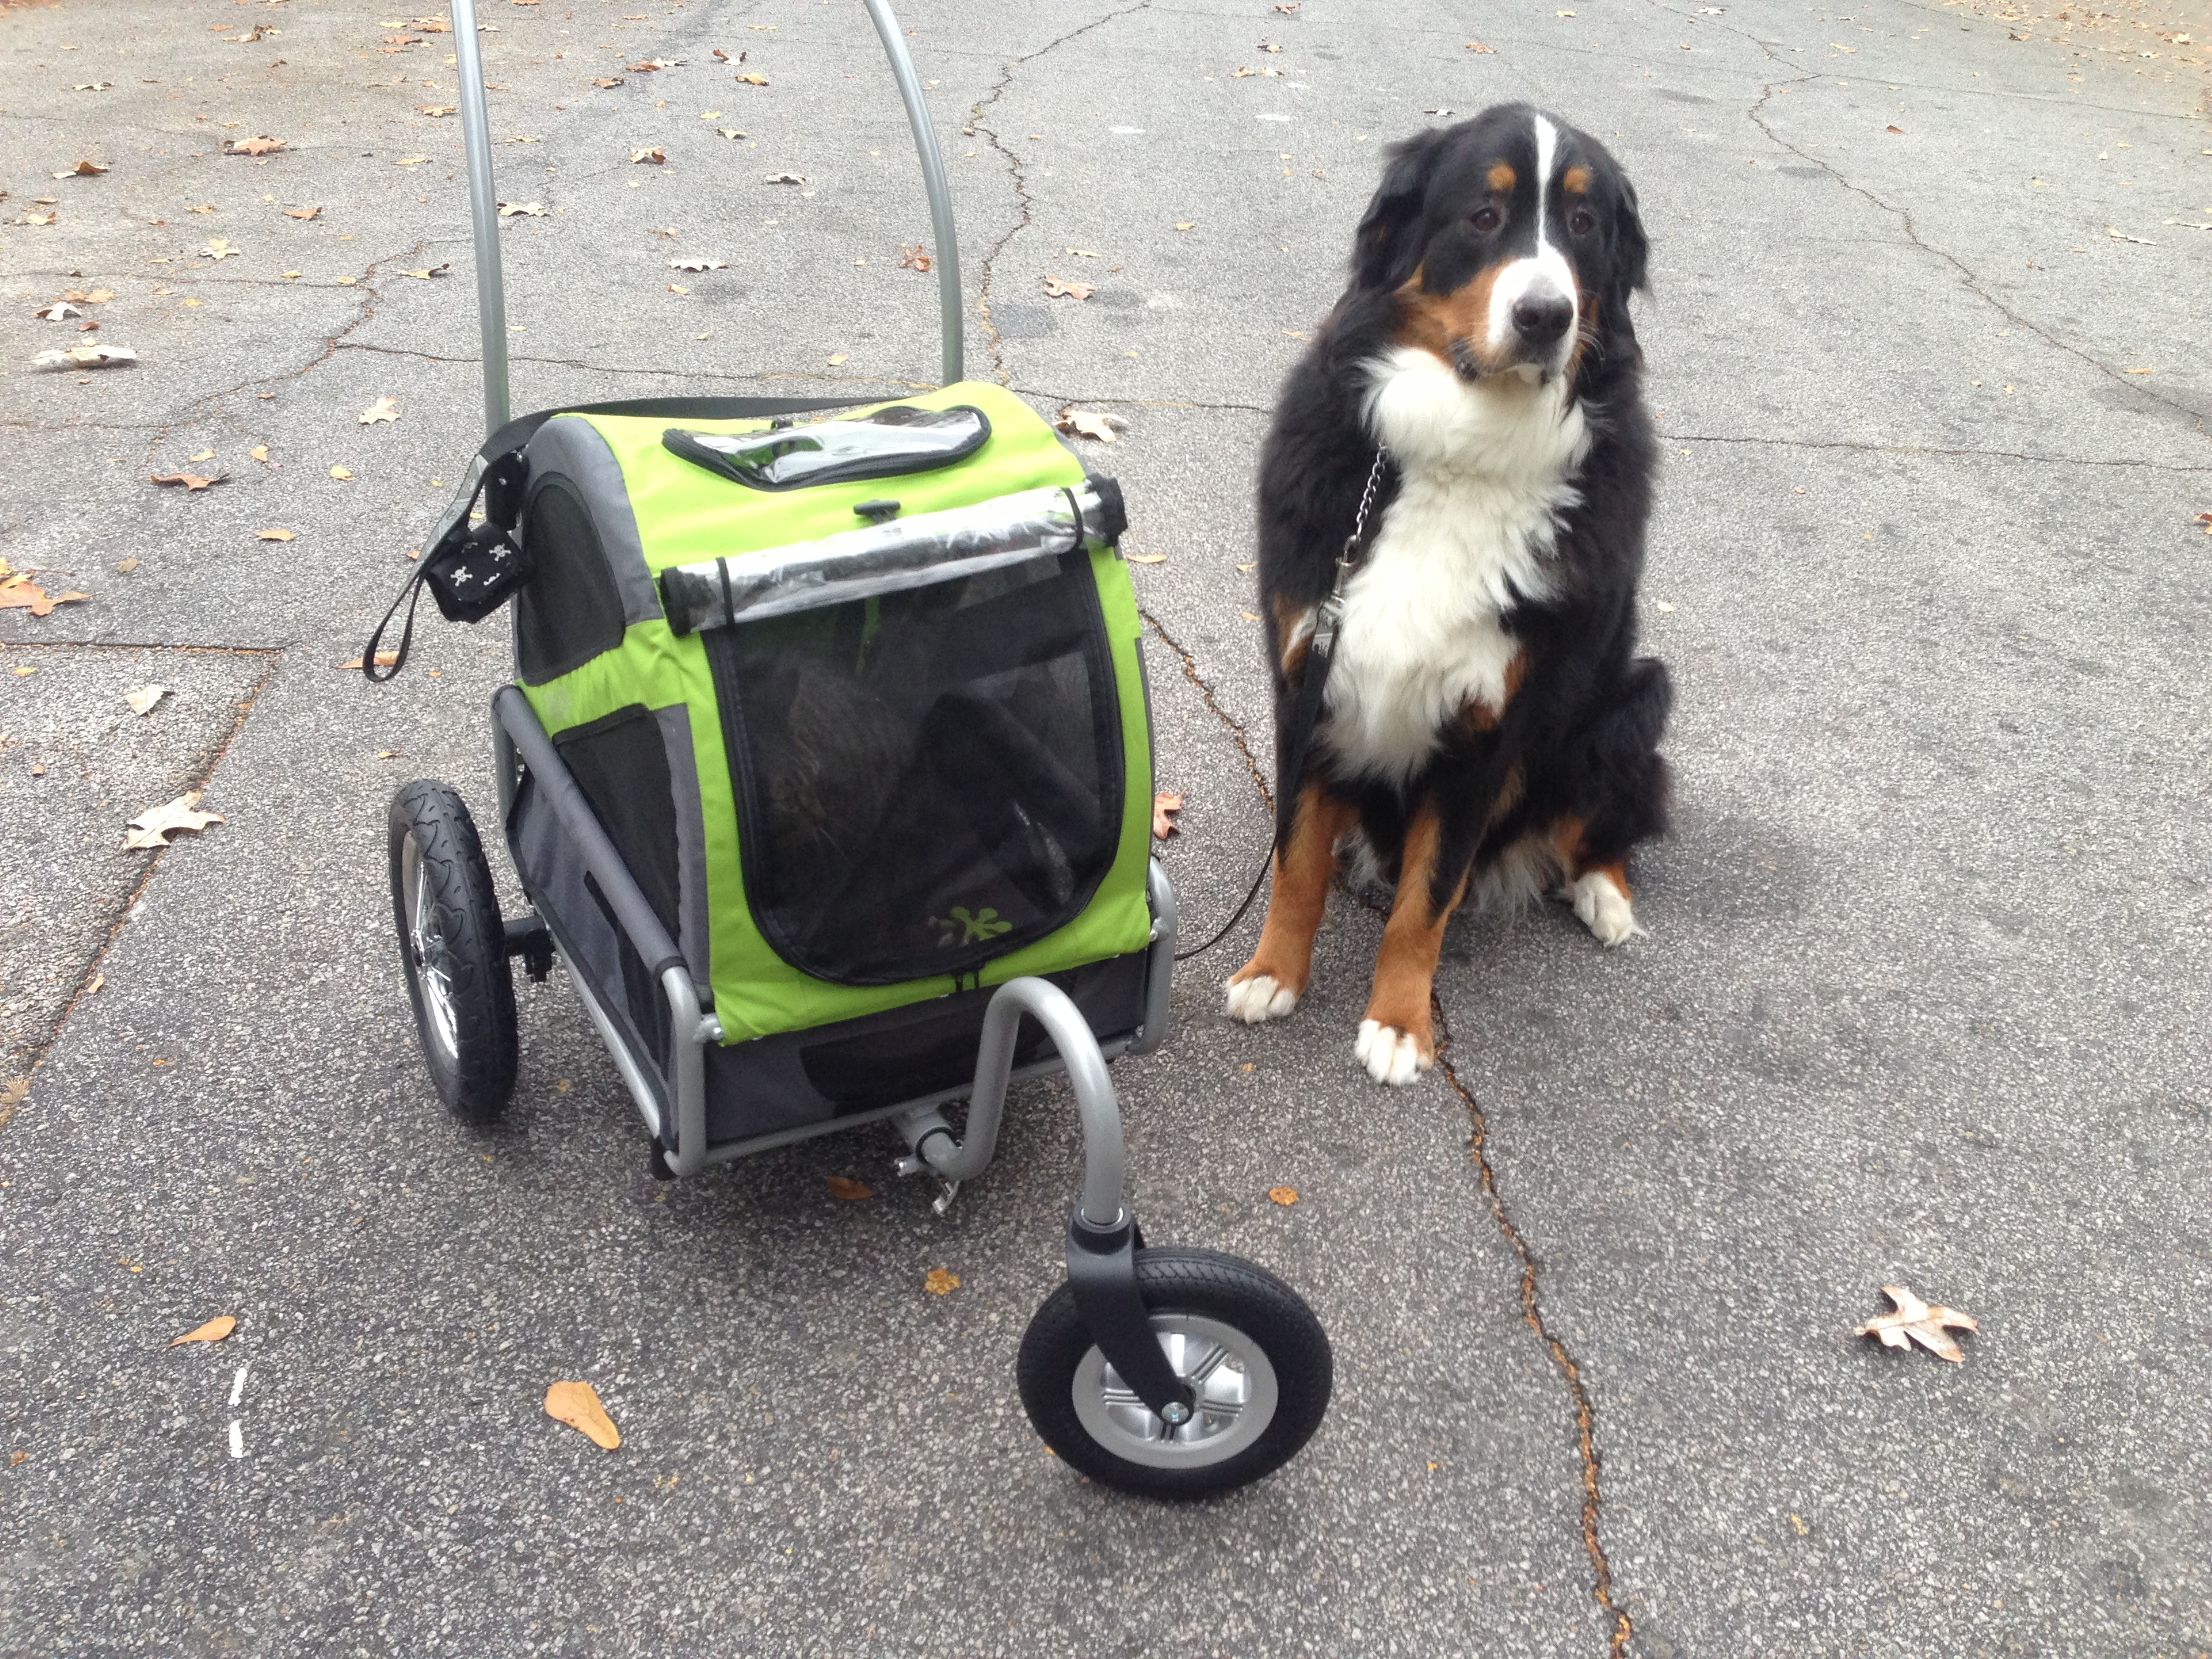 Of course bring the dog along on your stroller rides!